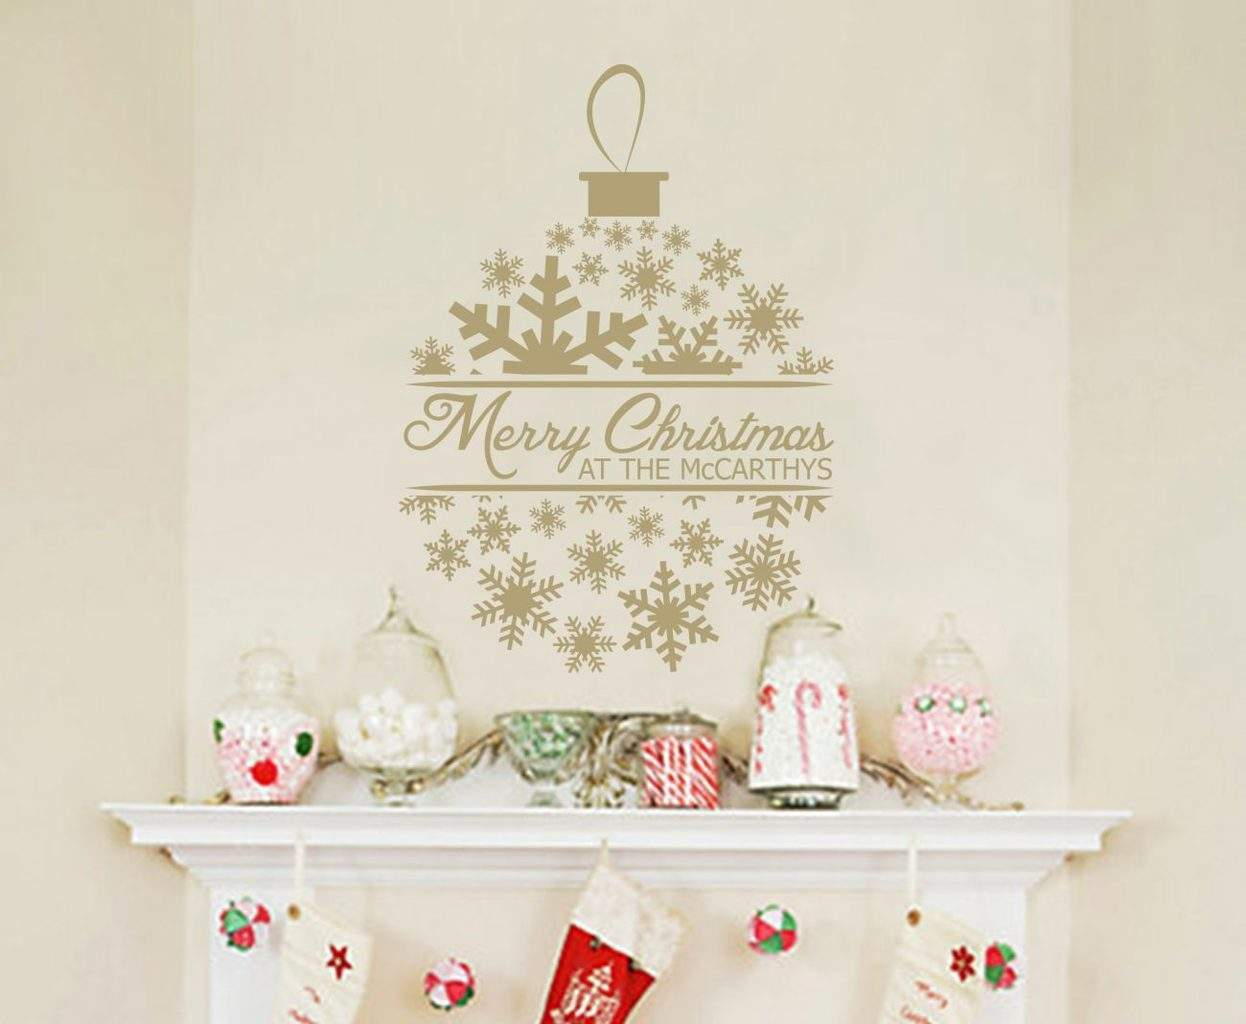 Merry Christmas personalised decoration decal sticker